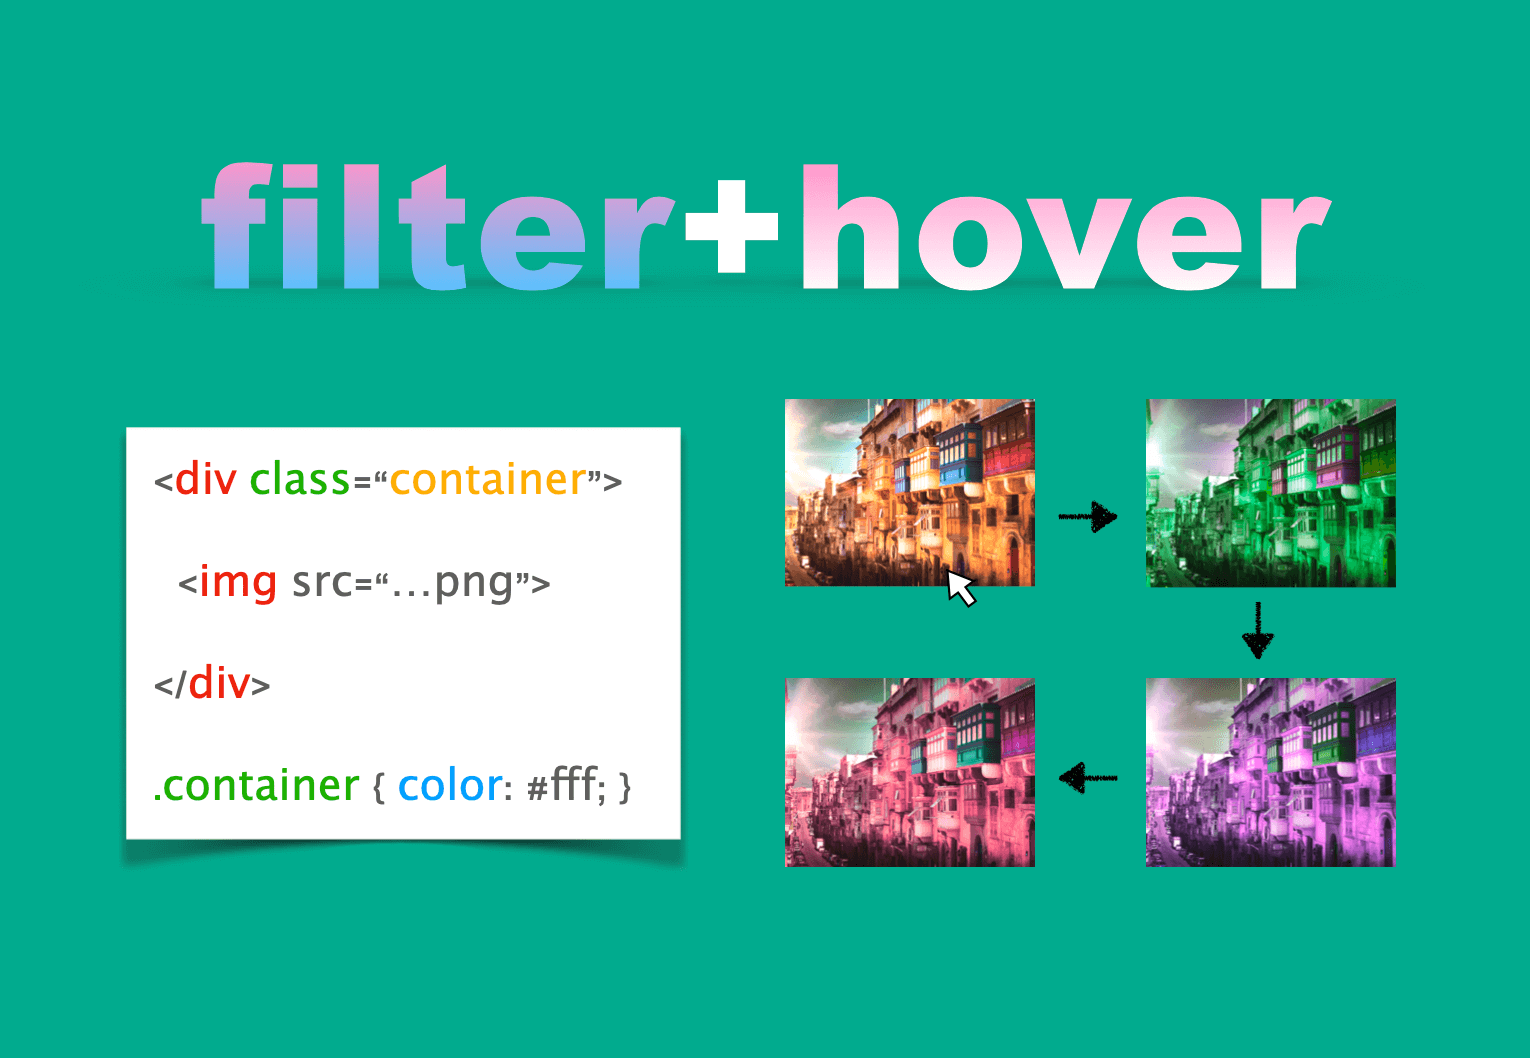 hover-animation-filters-transition.png